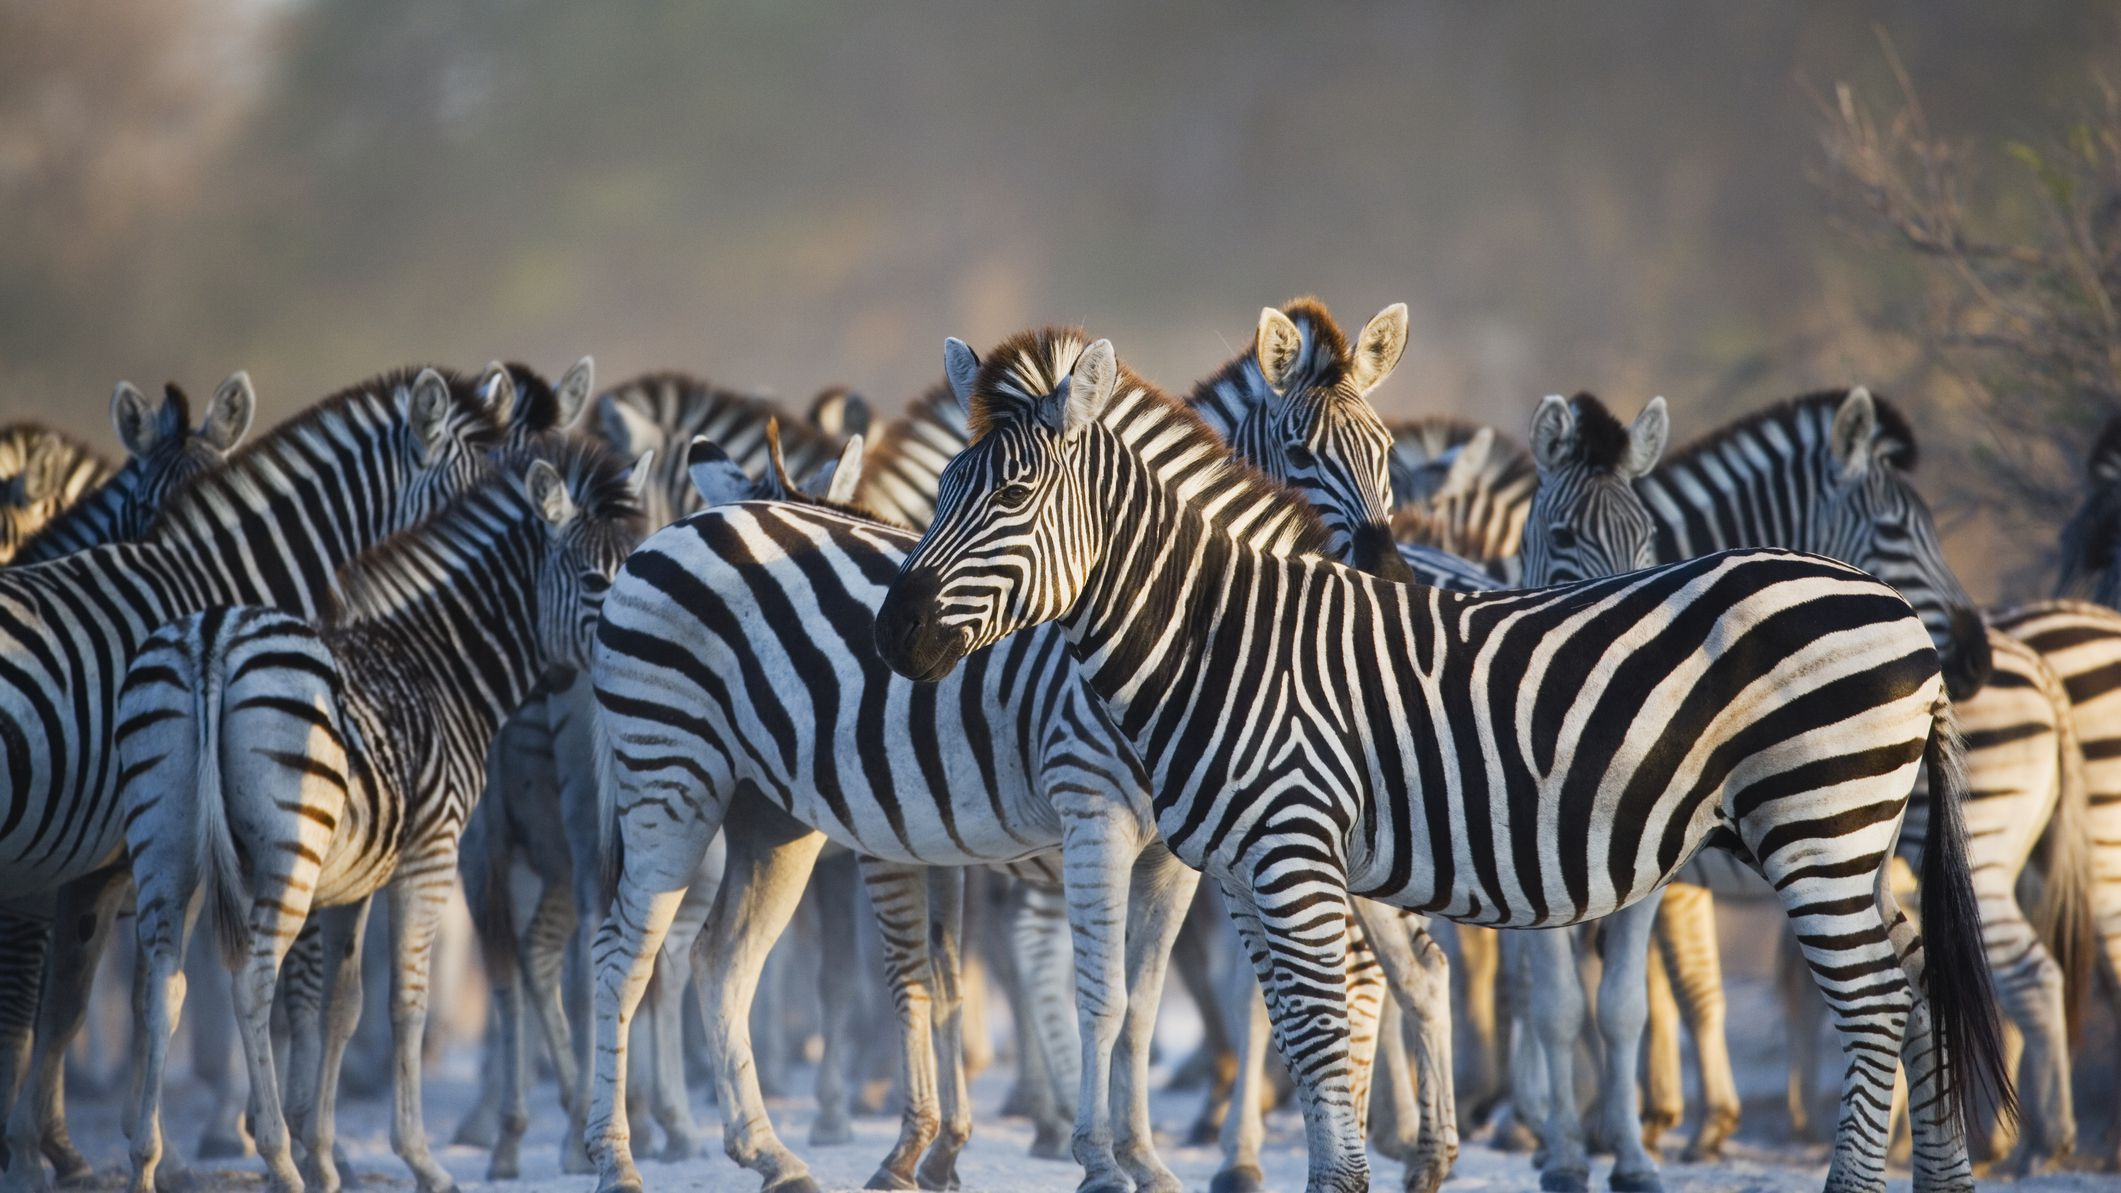 Africa's Top 12 Safari Animals and Where to Find Them